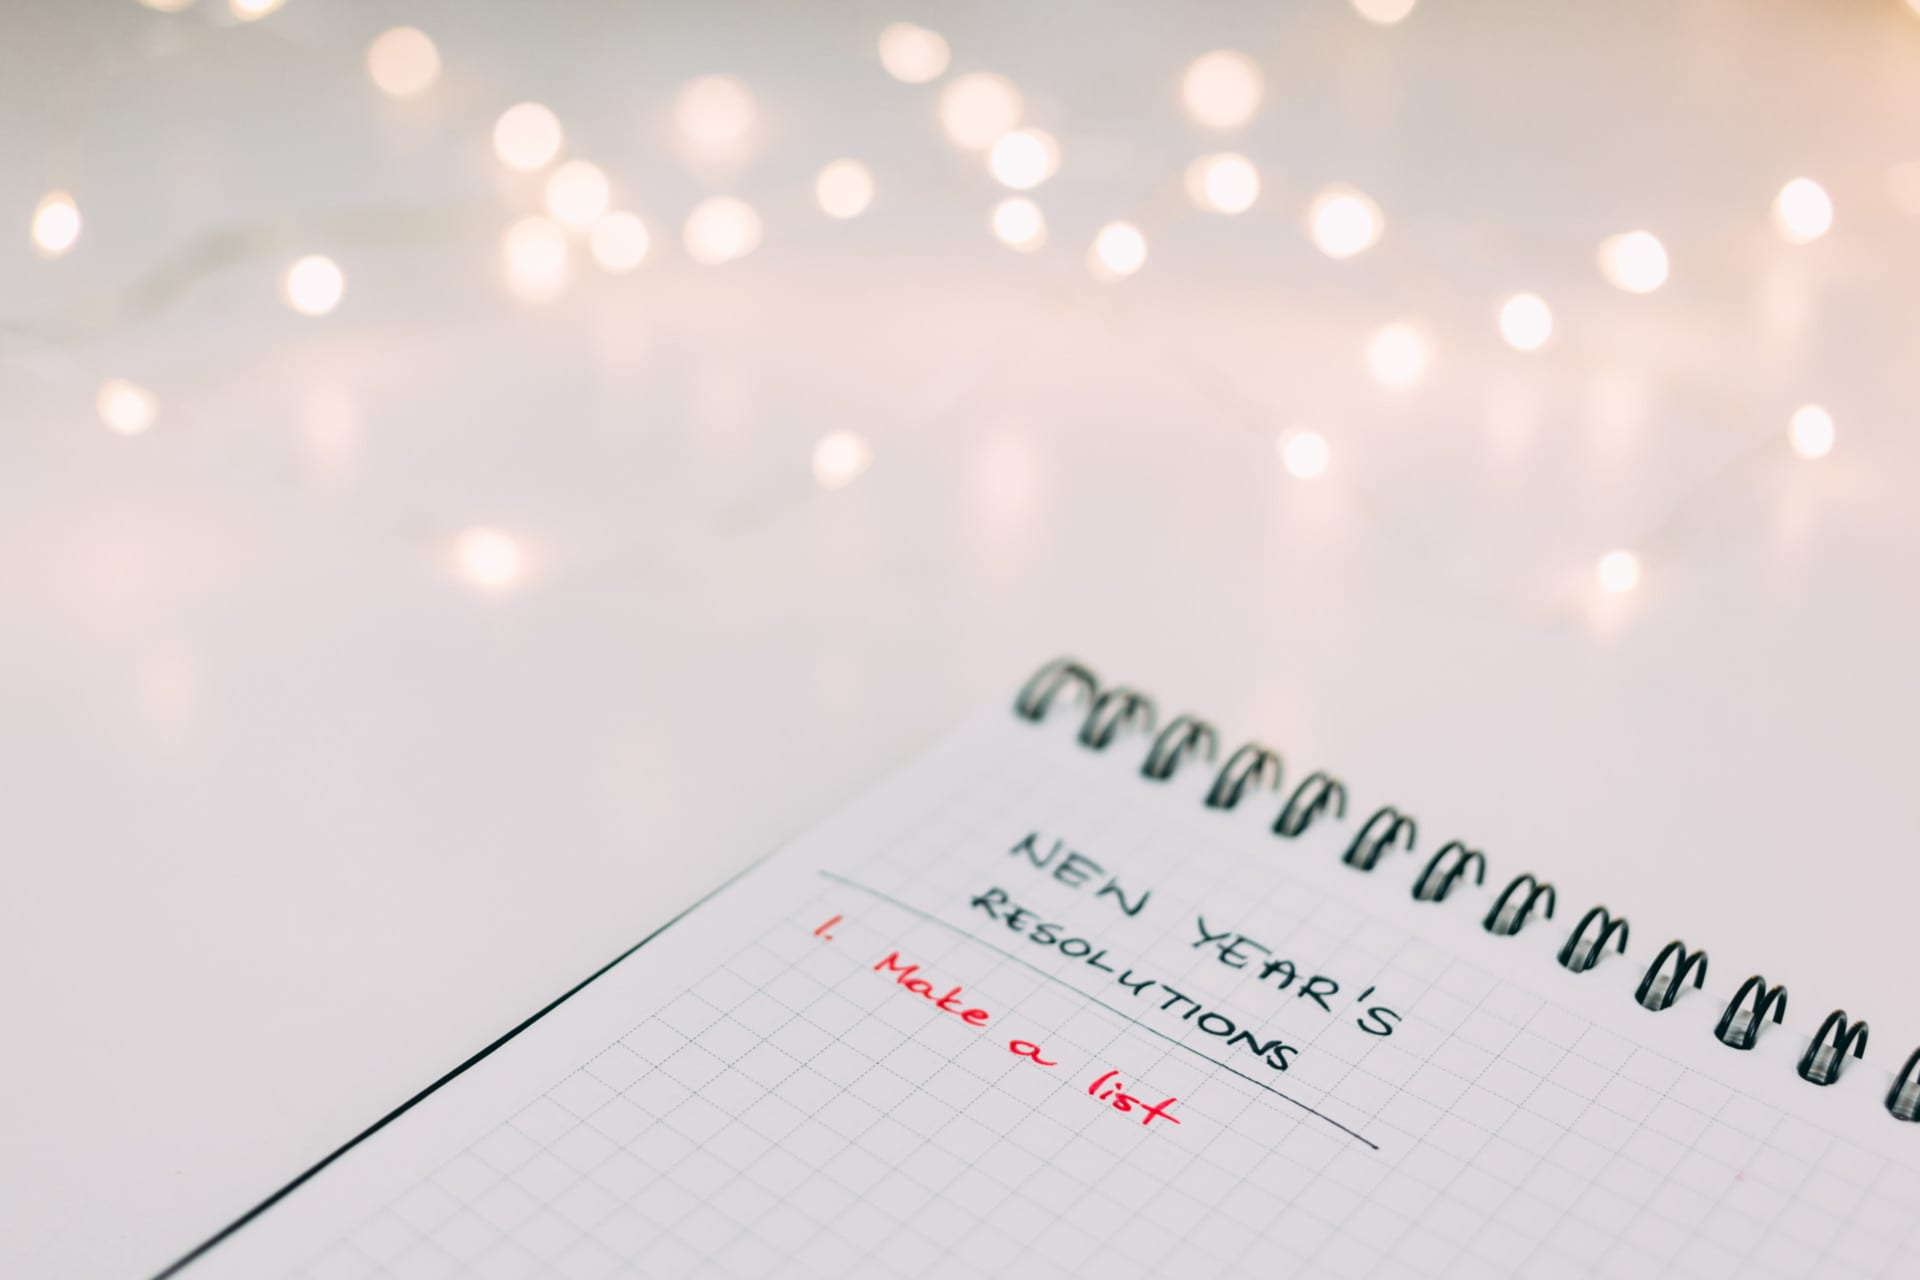 New Year's Resolutions list in notebook